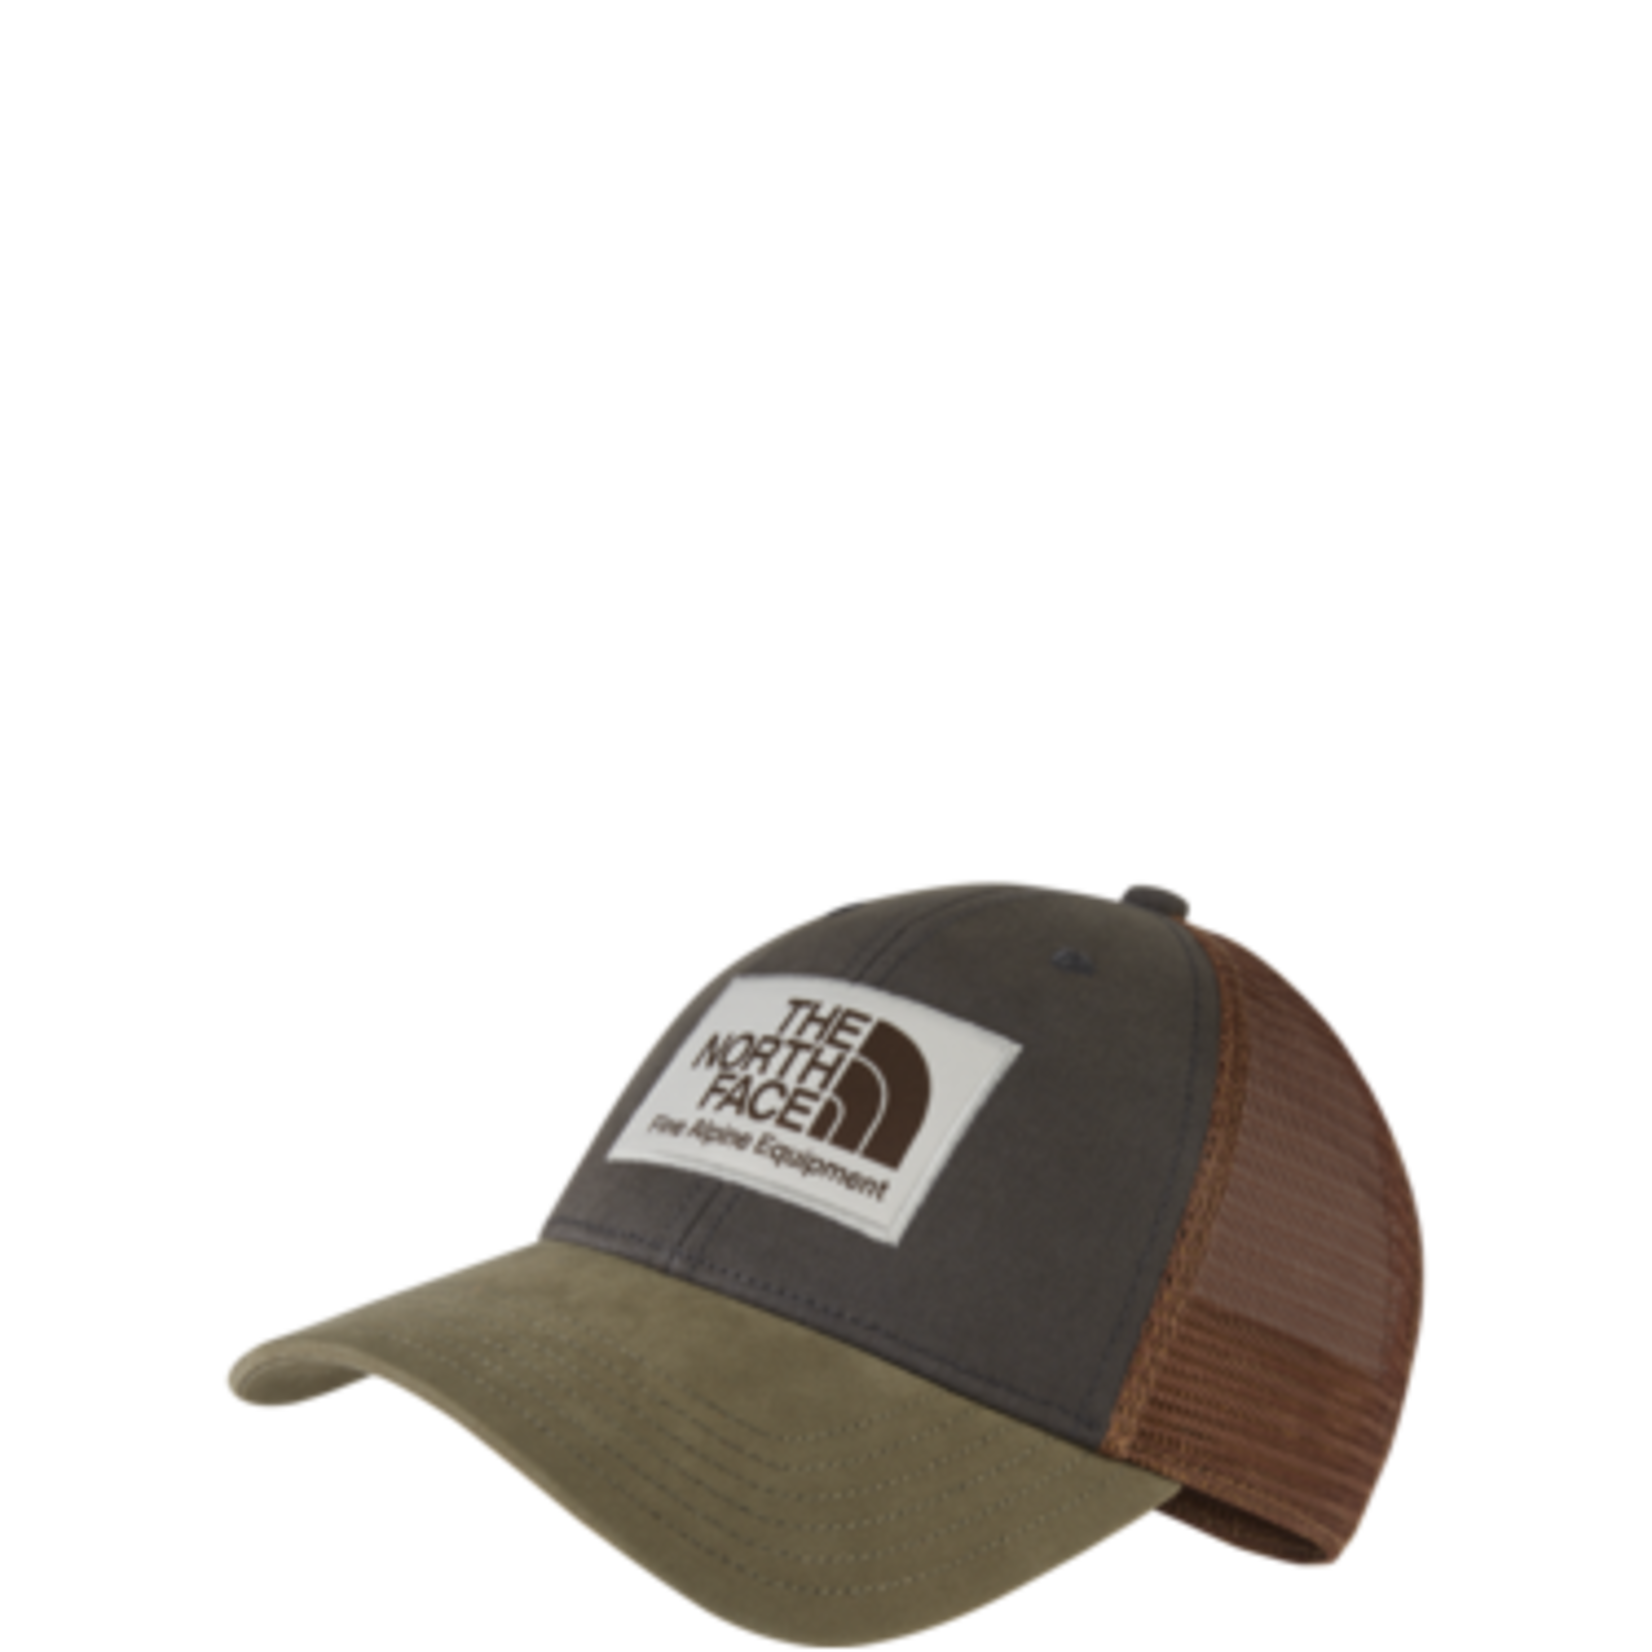 The North Face The North Face Hat, Mudder Trucker, Mens, OS